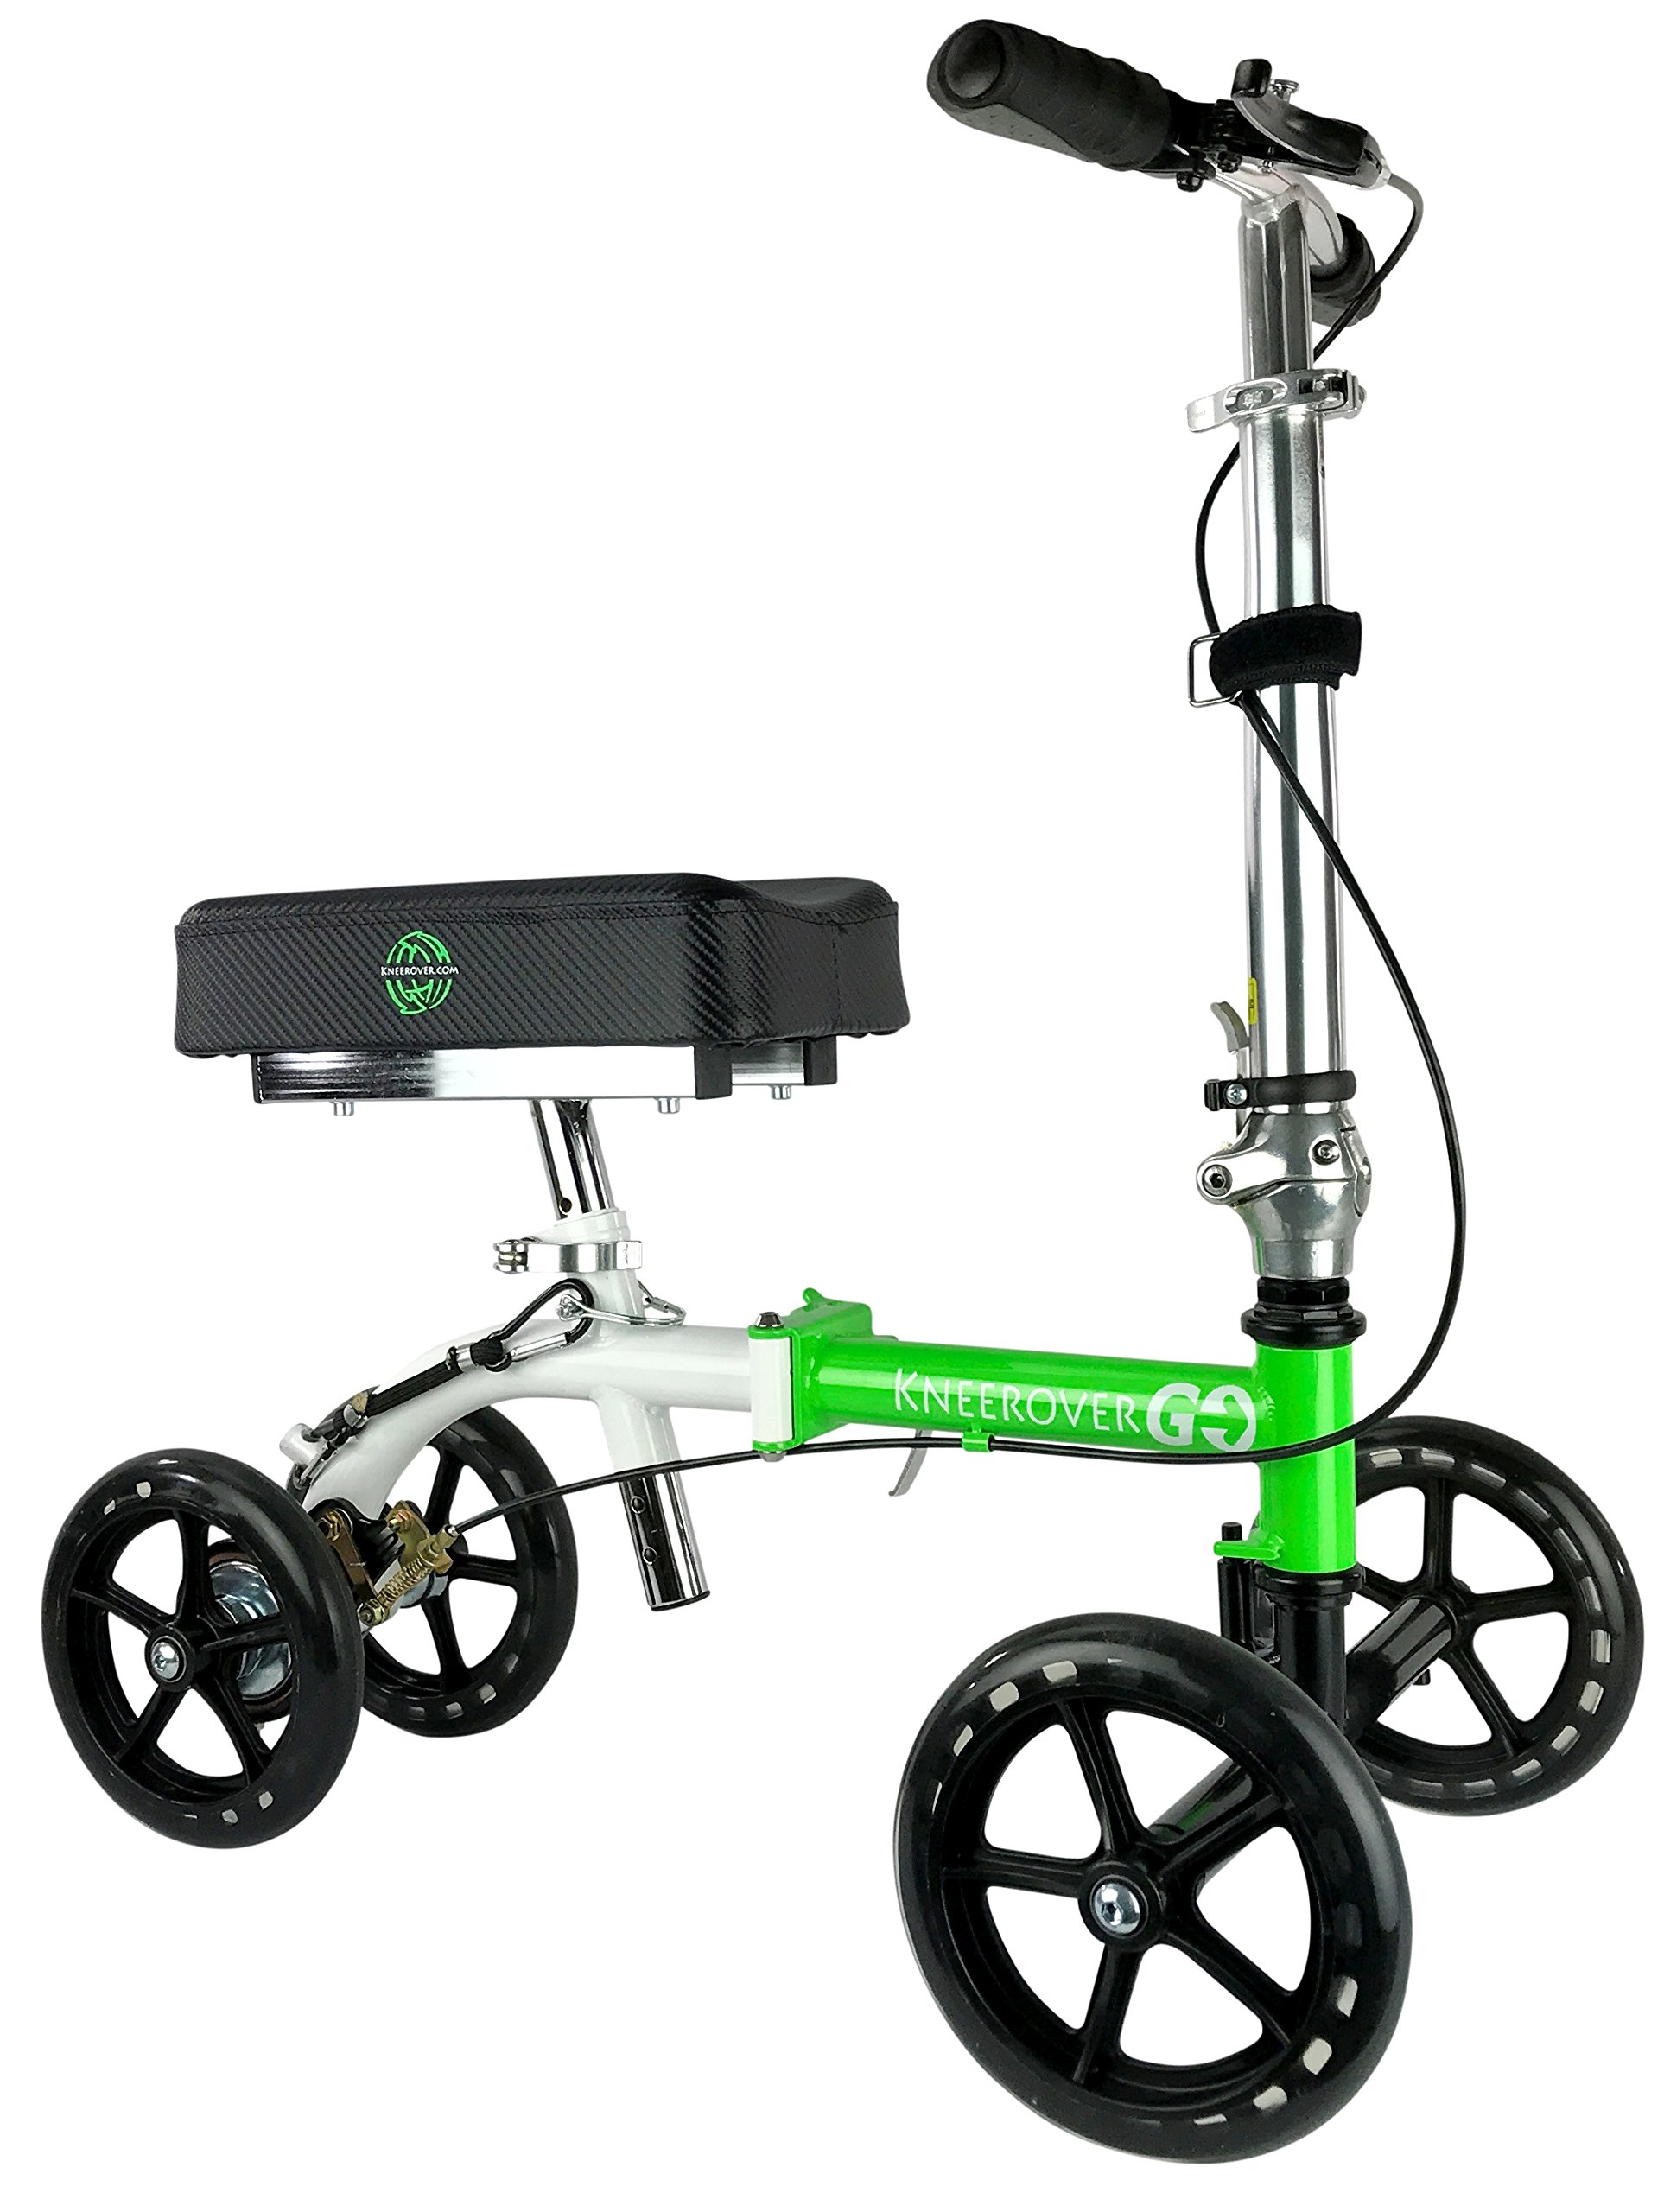 NEW KneeRover GO Knee Walker - The Most Compact & Portable Knee Scooter Crutches Alternative by KneeRover